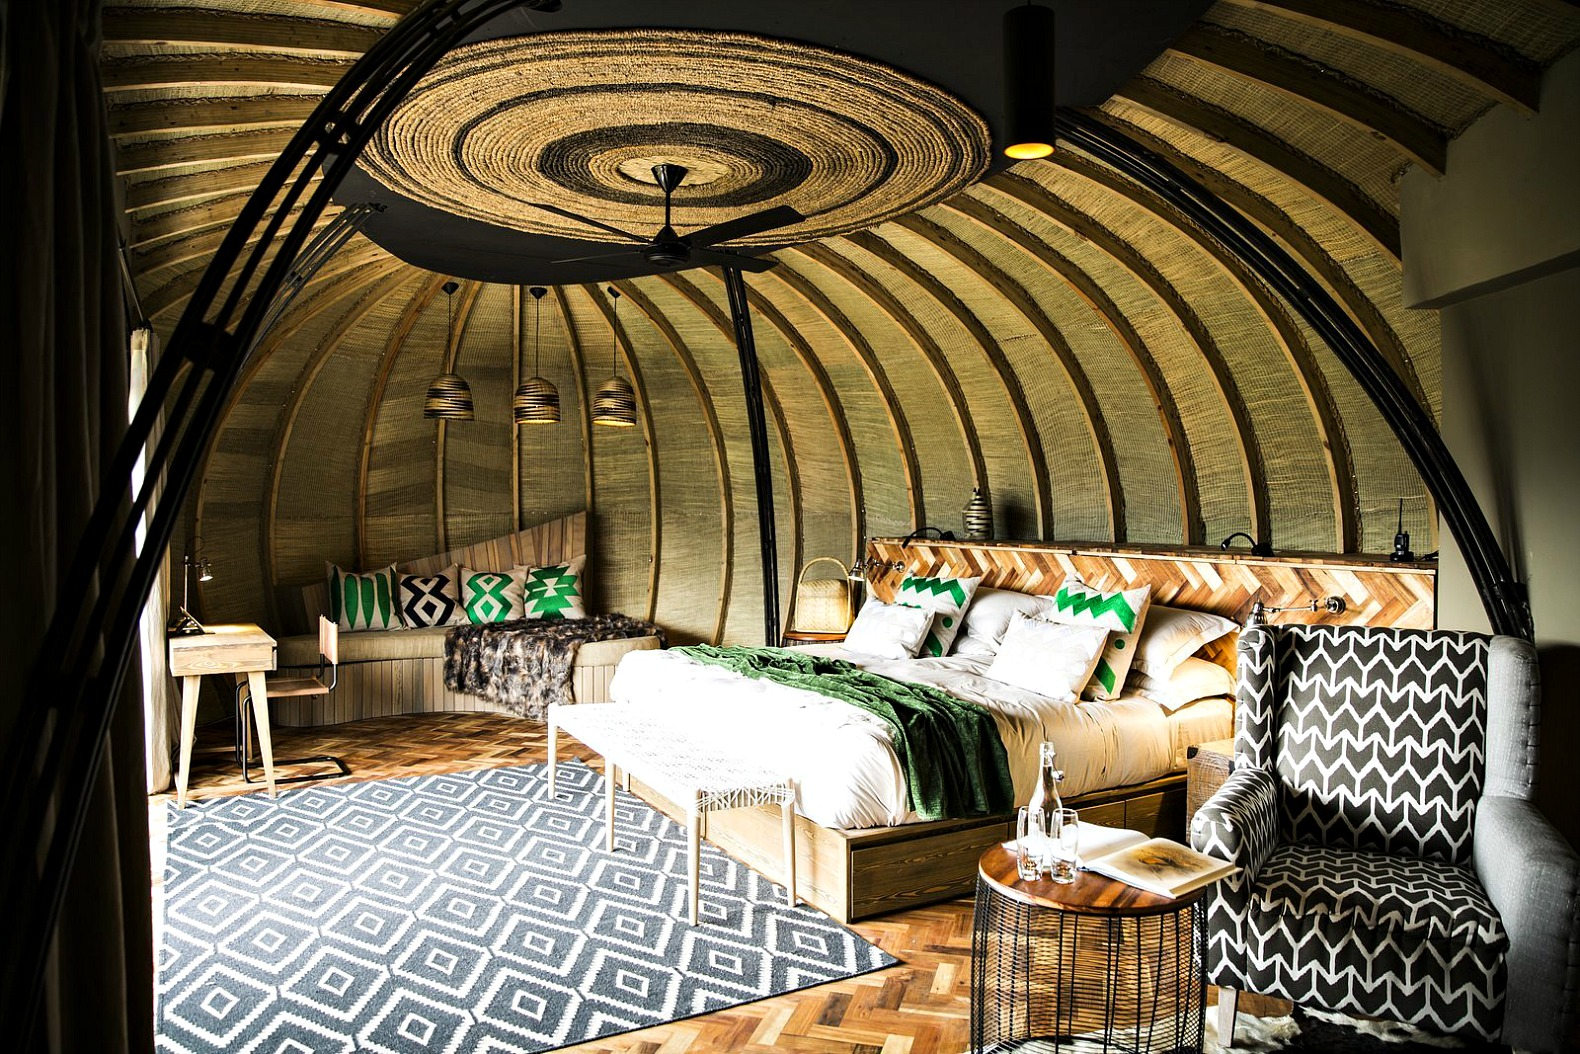 Bisate Lodge: A Rwandan Eco-Retreat Built Into An Eroded Volcano